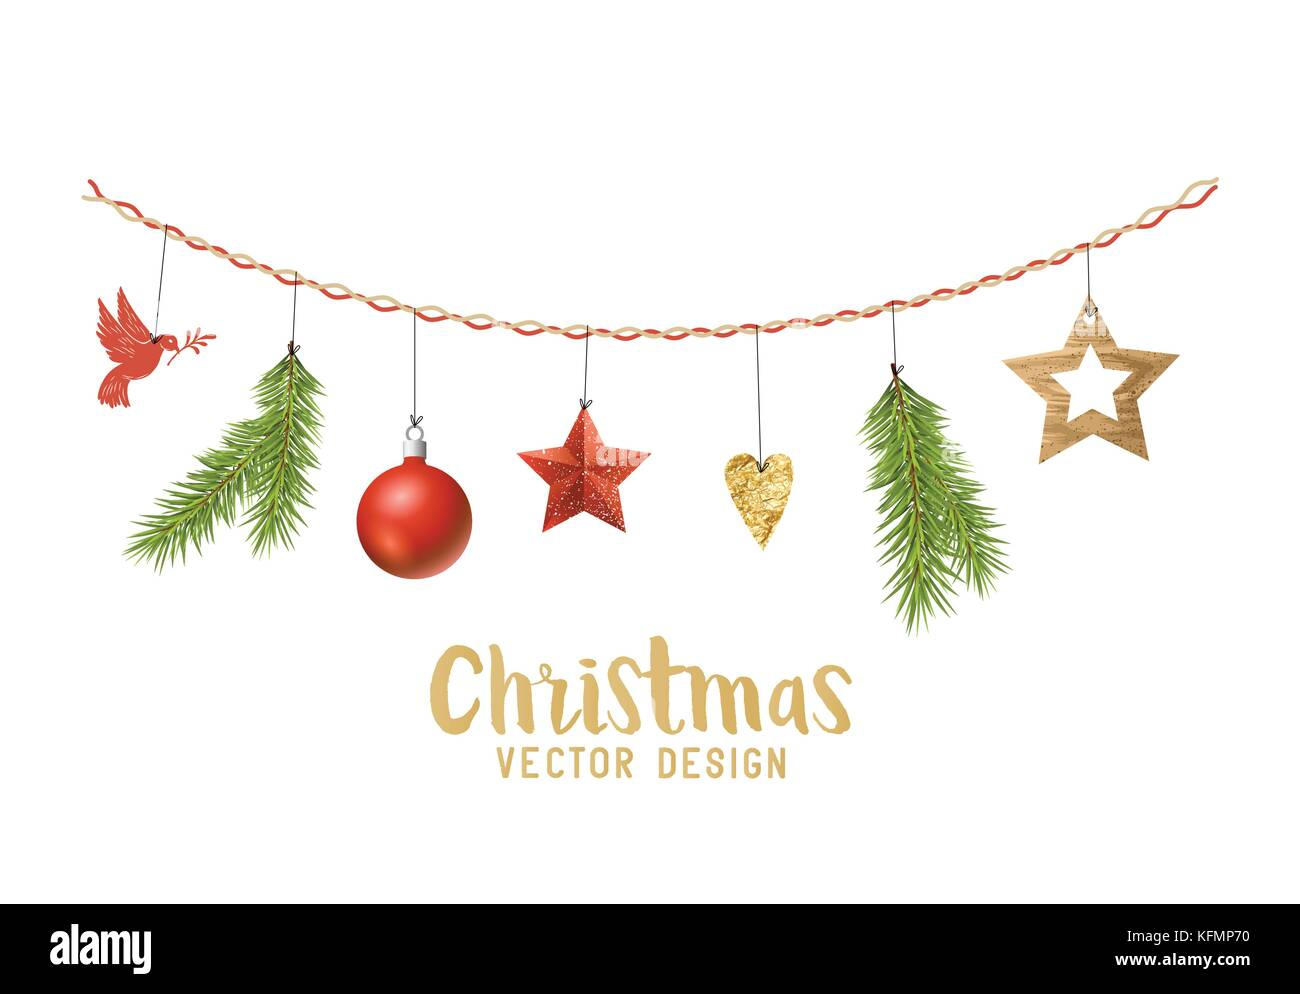 Hanging Christmas Decorations Composition With Fir Tree